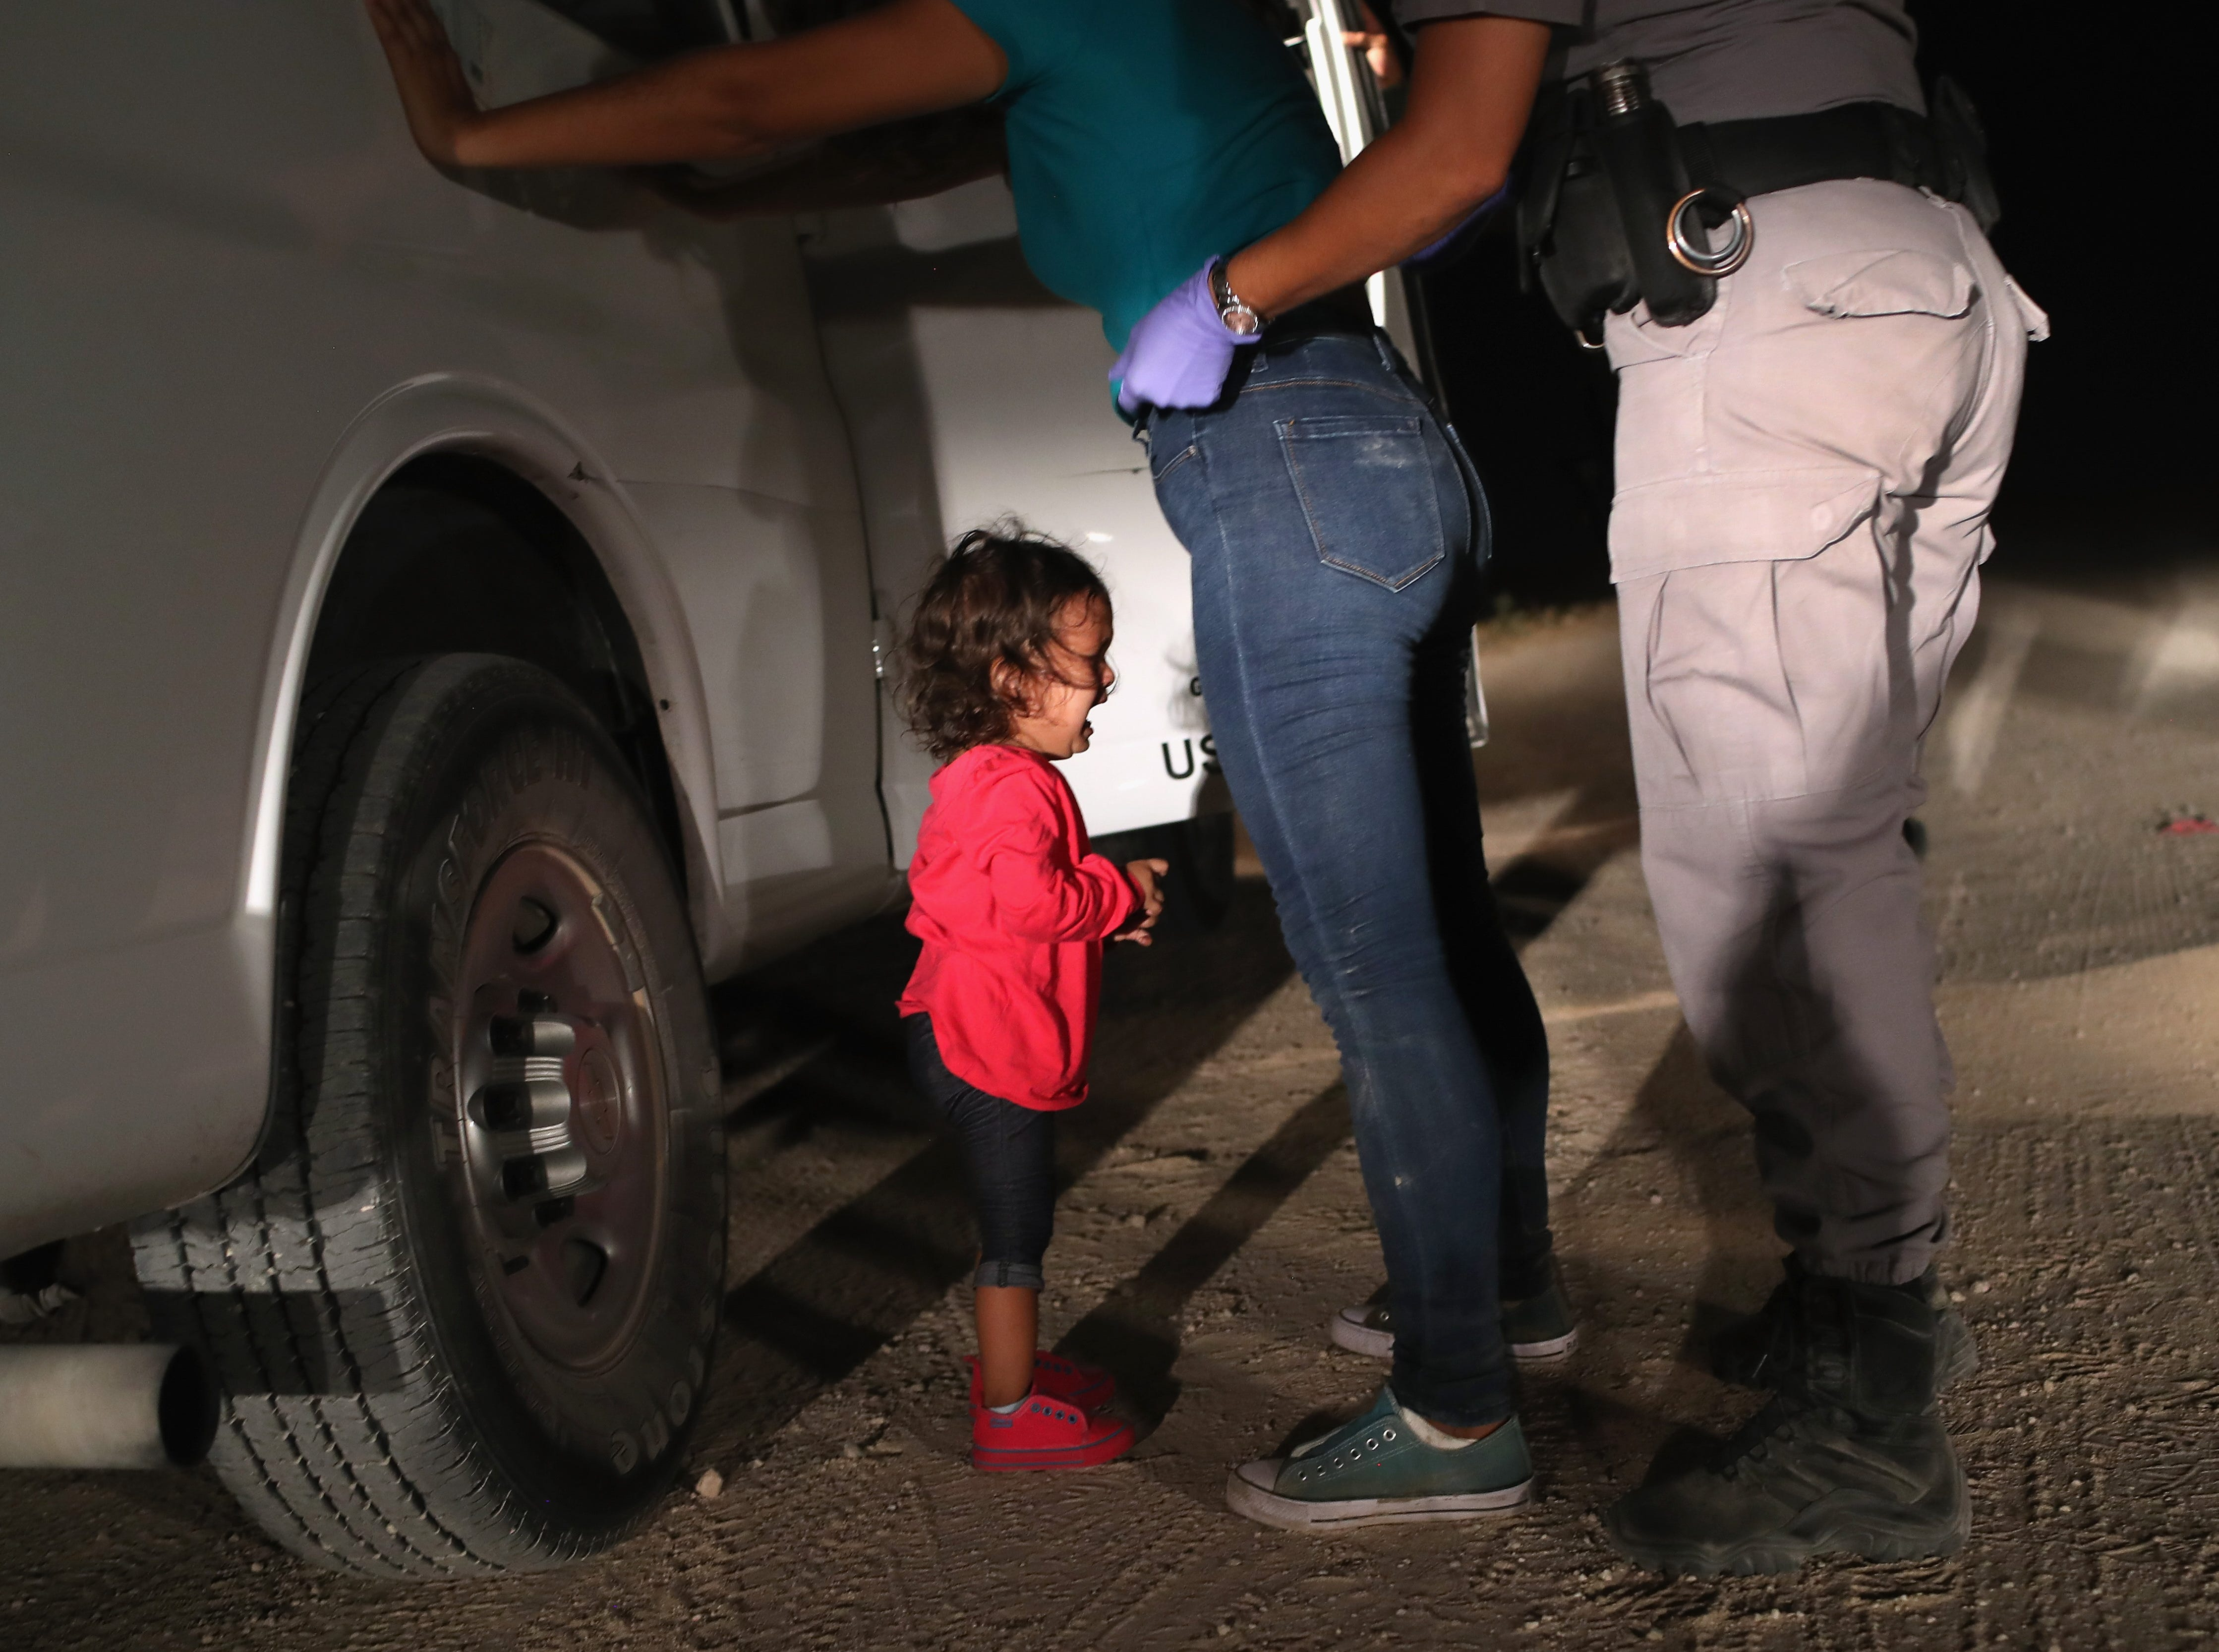 A 2-year-old Honduran asylum seeker cries as her mother is searched and detained near the U.S.-Mexico border on June 12, 2018, in McAllen, Texas. The asylum seekers had rafted across the Rio Grande from Mexico and were detained by U.S. Border Patrol agents before being sent to a processing center for possible separation.